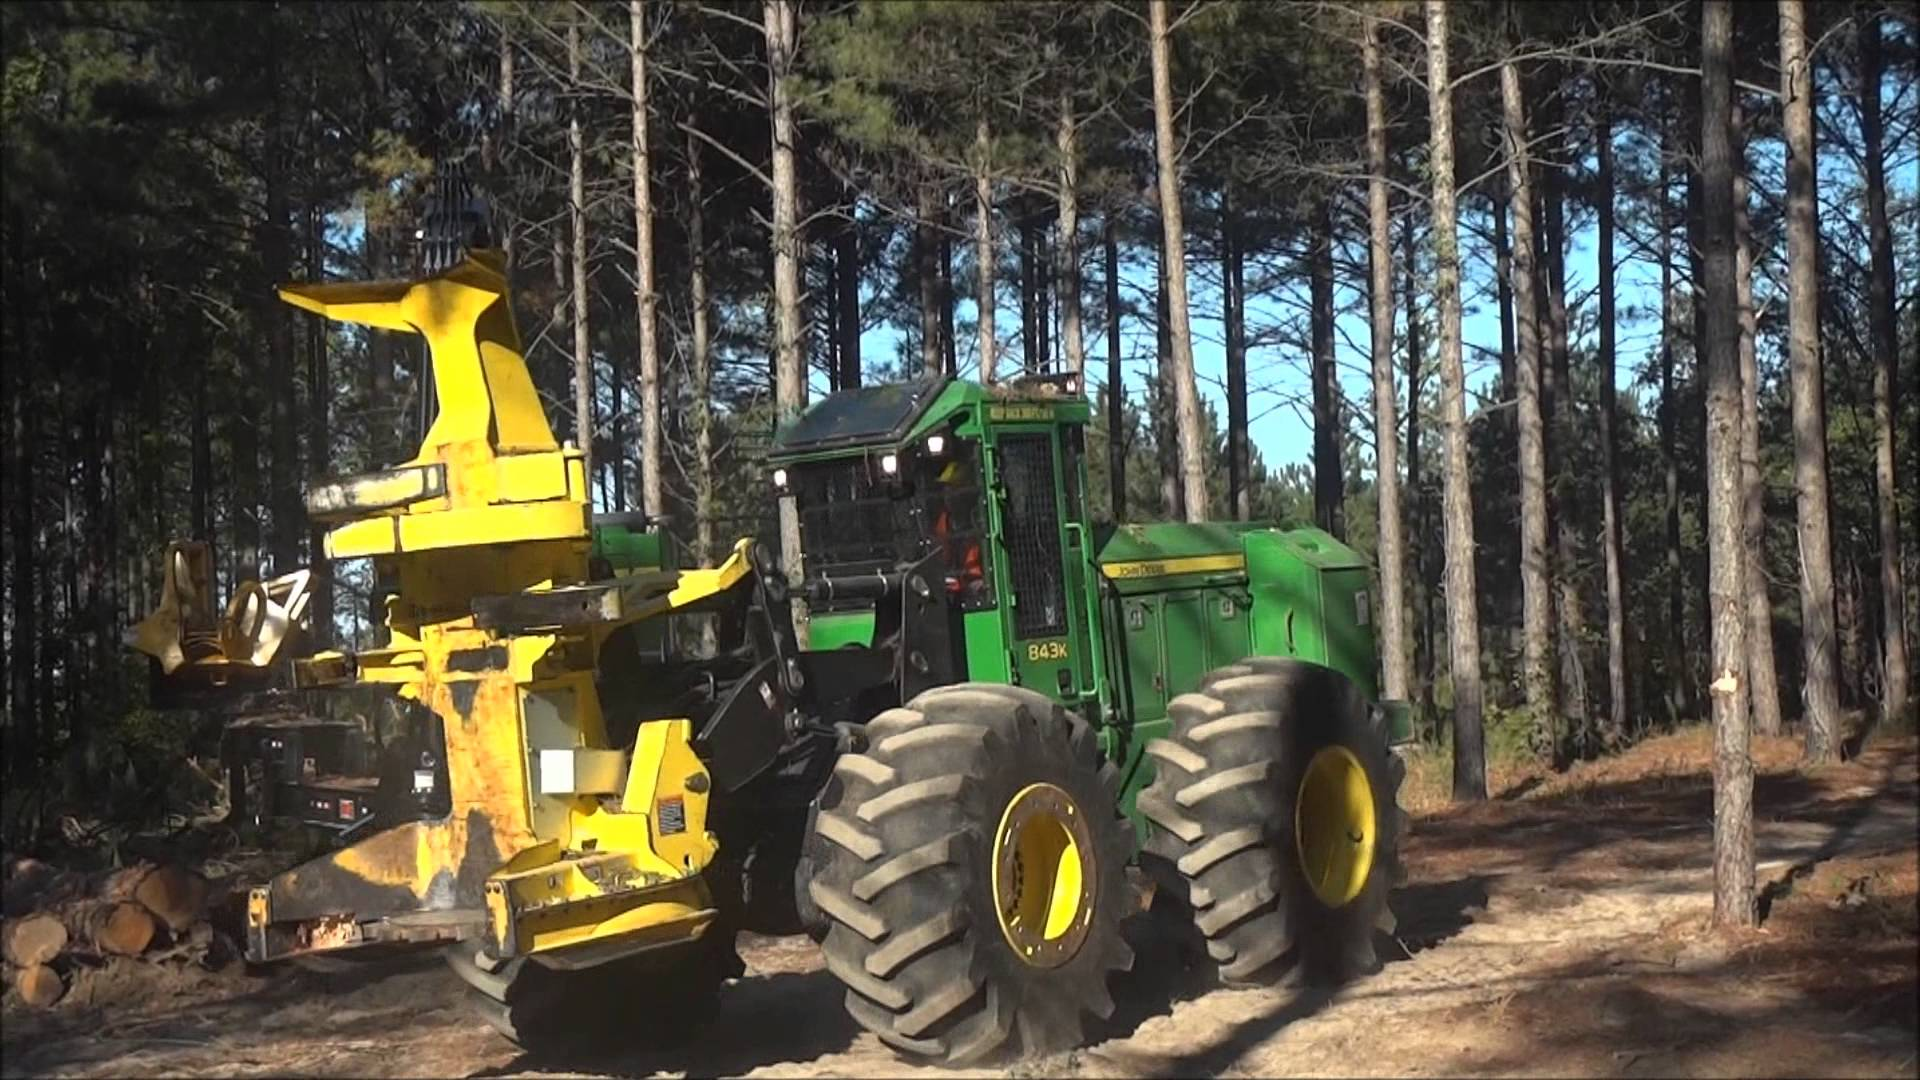 John Deere Forestry Machines You May recognize:Image to Wallpaper